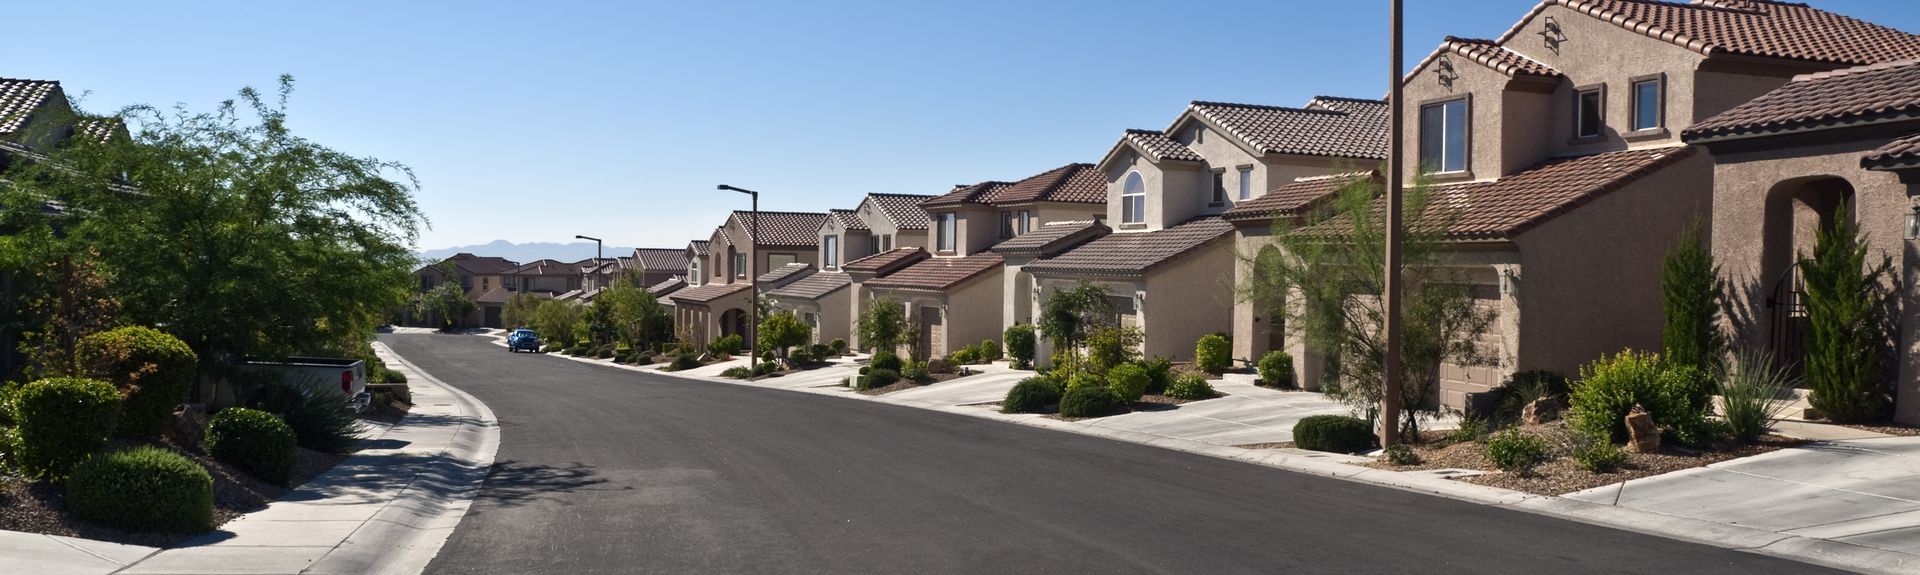 Summerlin, Las Vegas, NV, USA